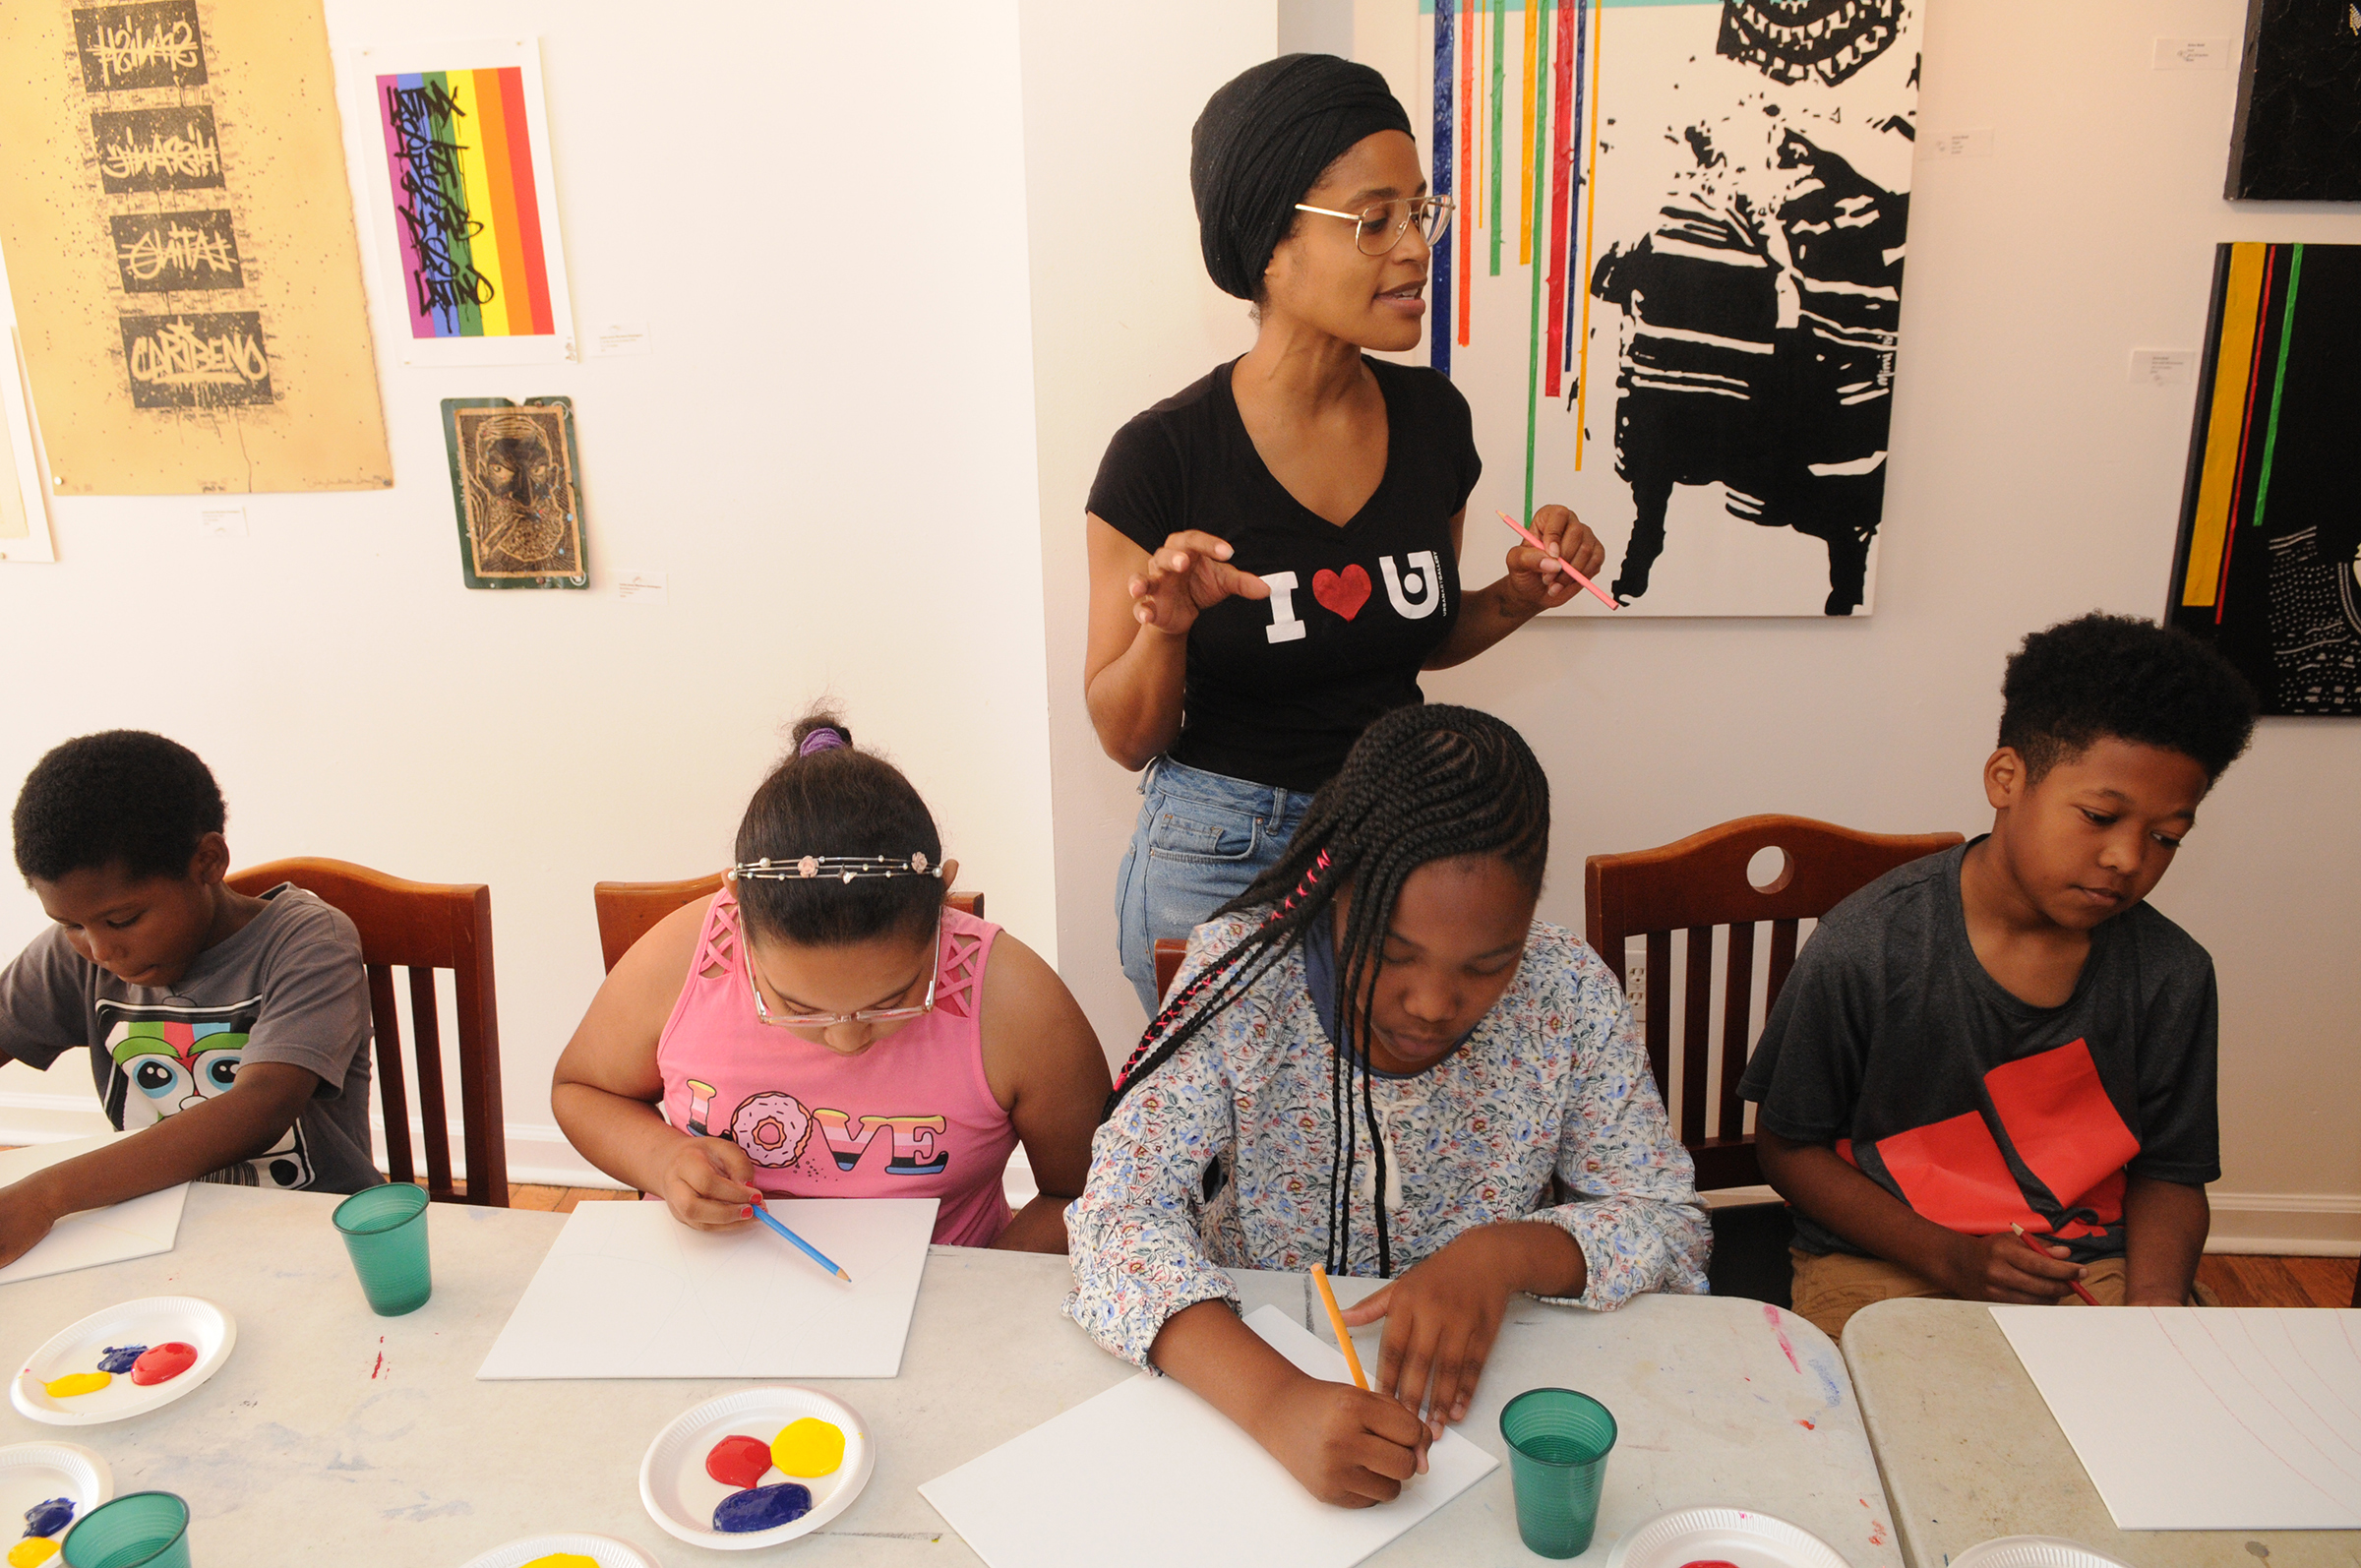 Art teacher Shanina Dionna talking to her students at Urban Art Gallery.